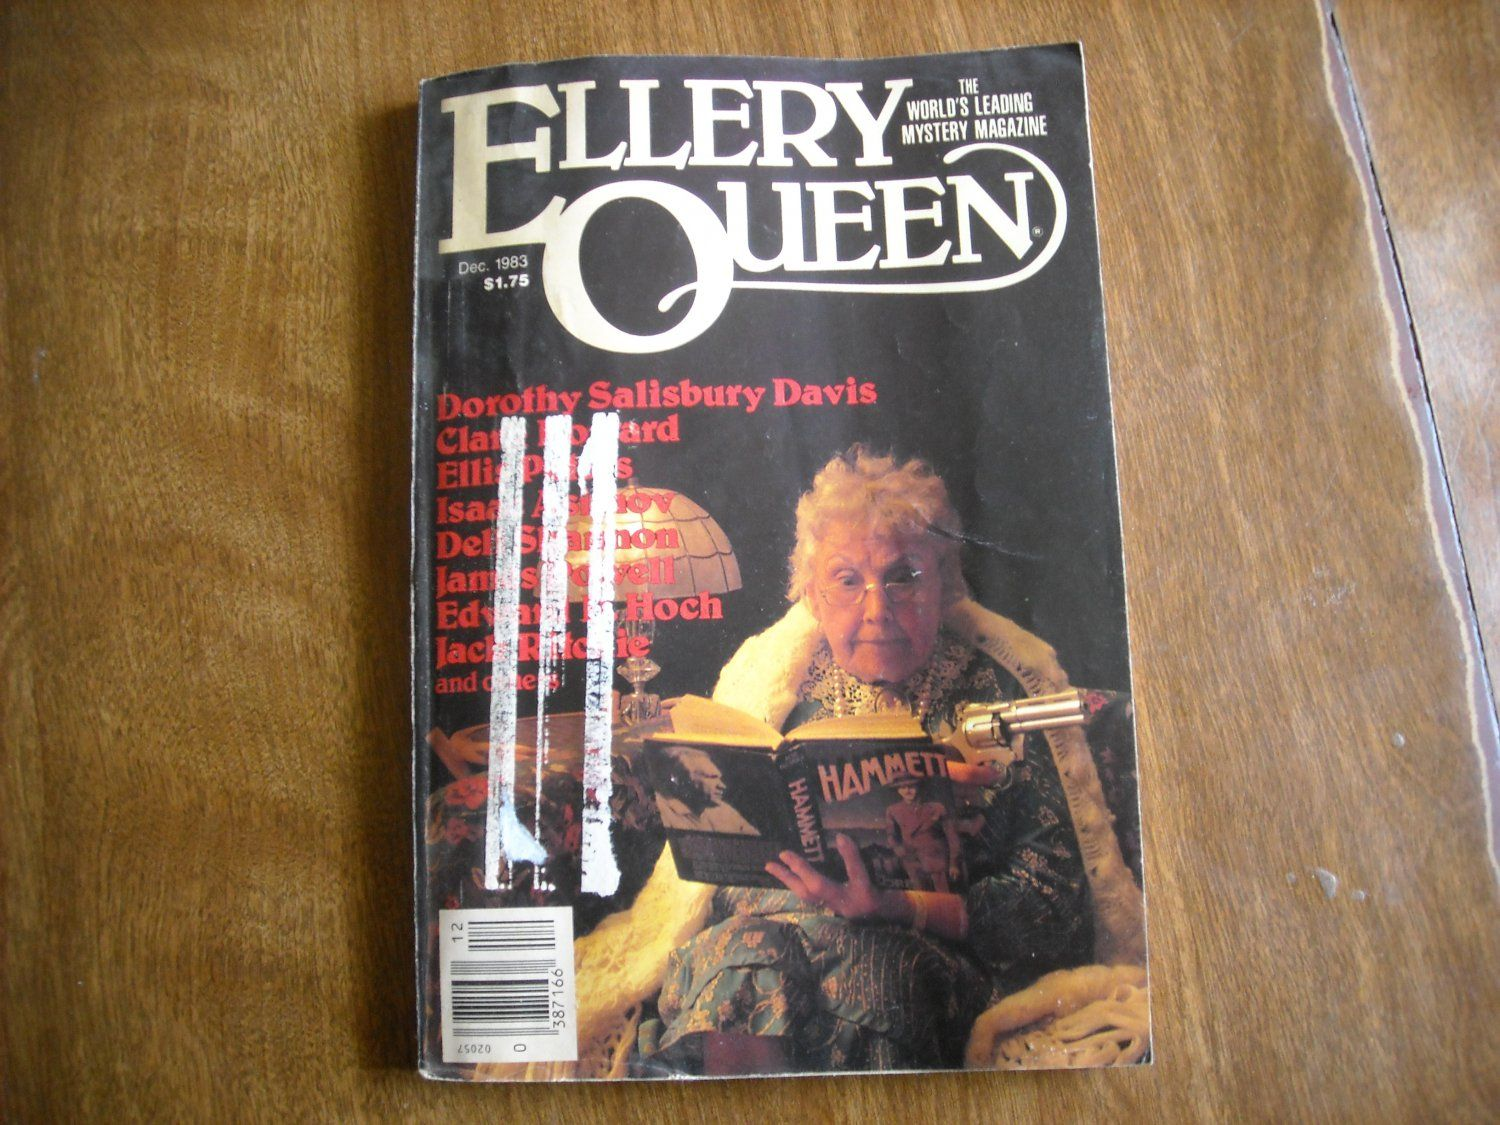 Ellery Queen Mystery Magazine- December 1983 Vol 82 No 7 Hoch Asimov Hubin Olson - for sale at Wenzel Thrifty Nickel ecrater store